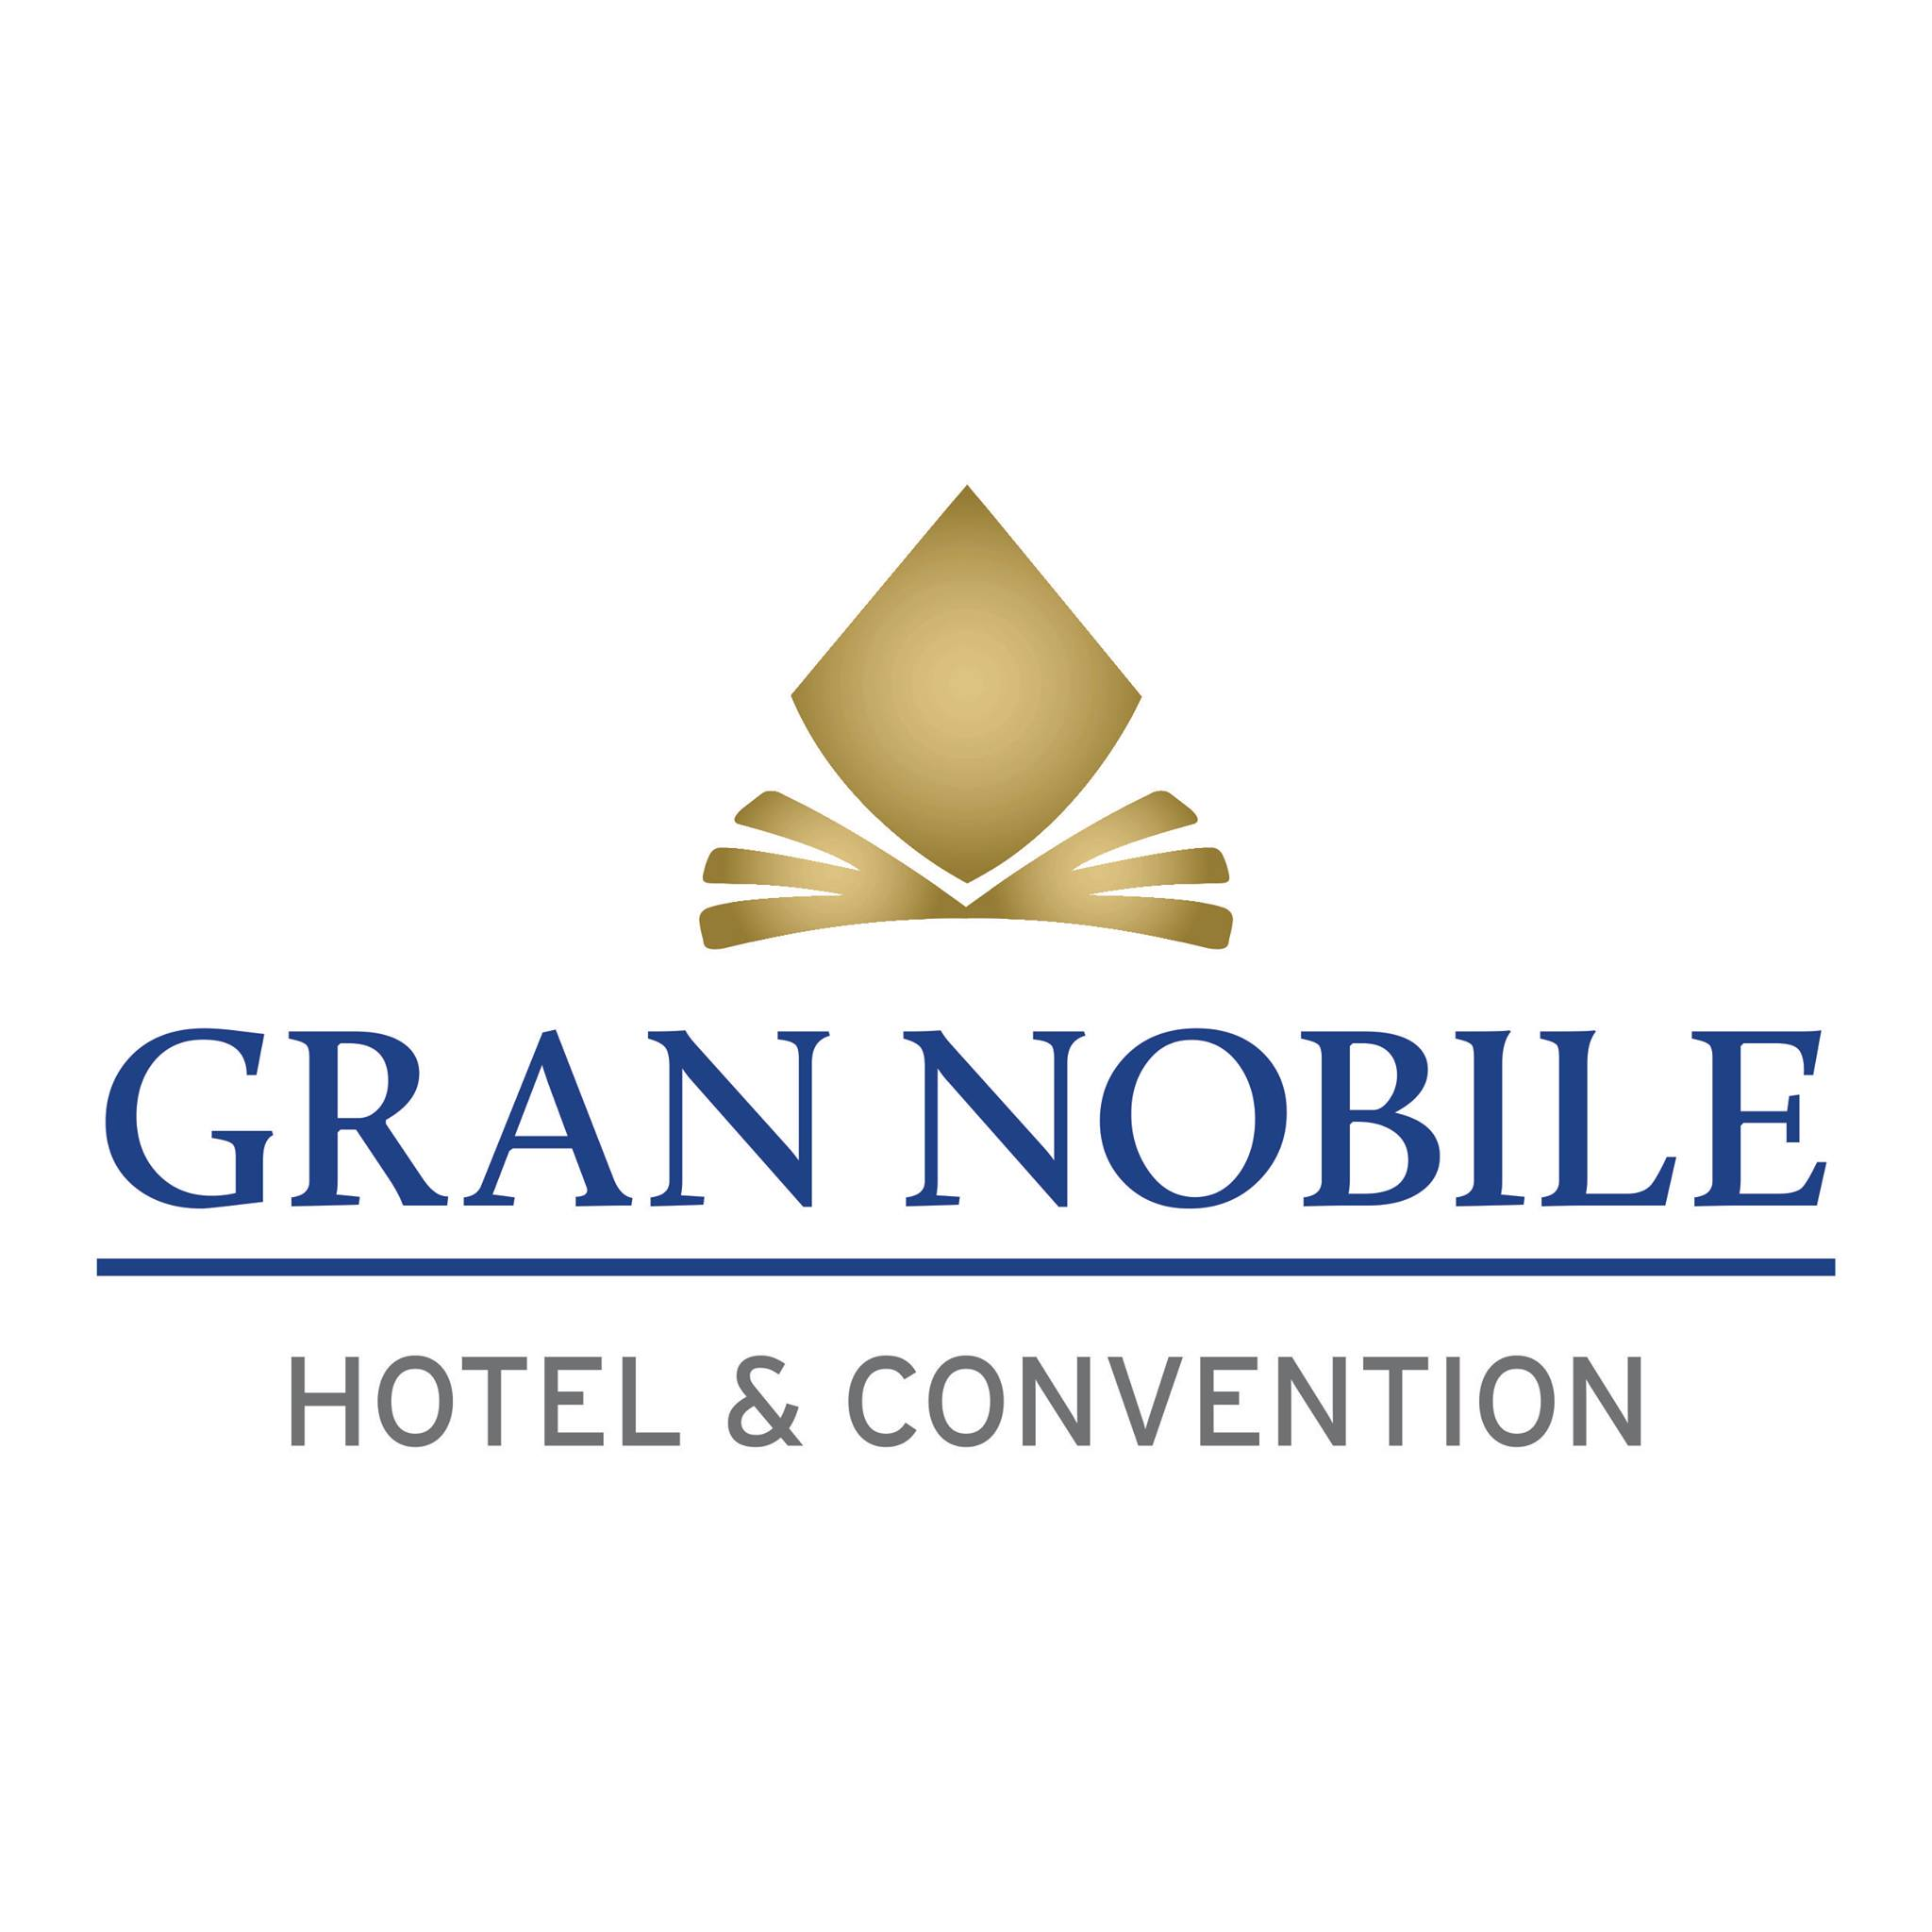 Gran Nobile Hotel & Convention